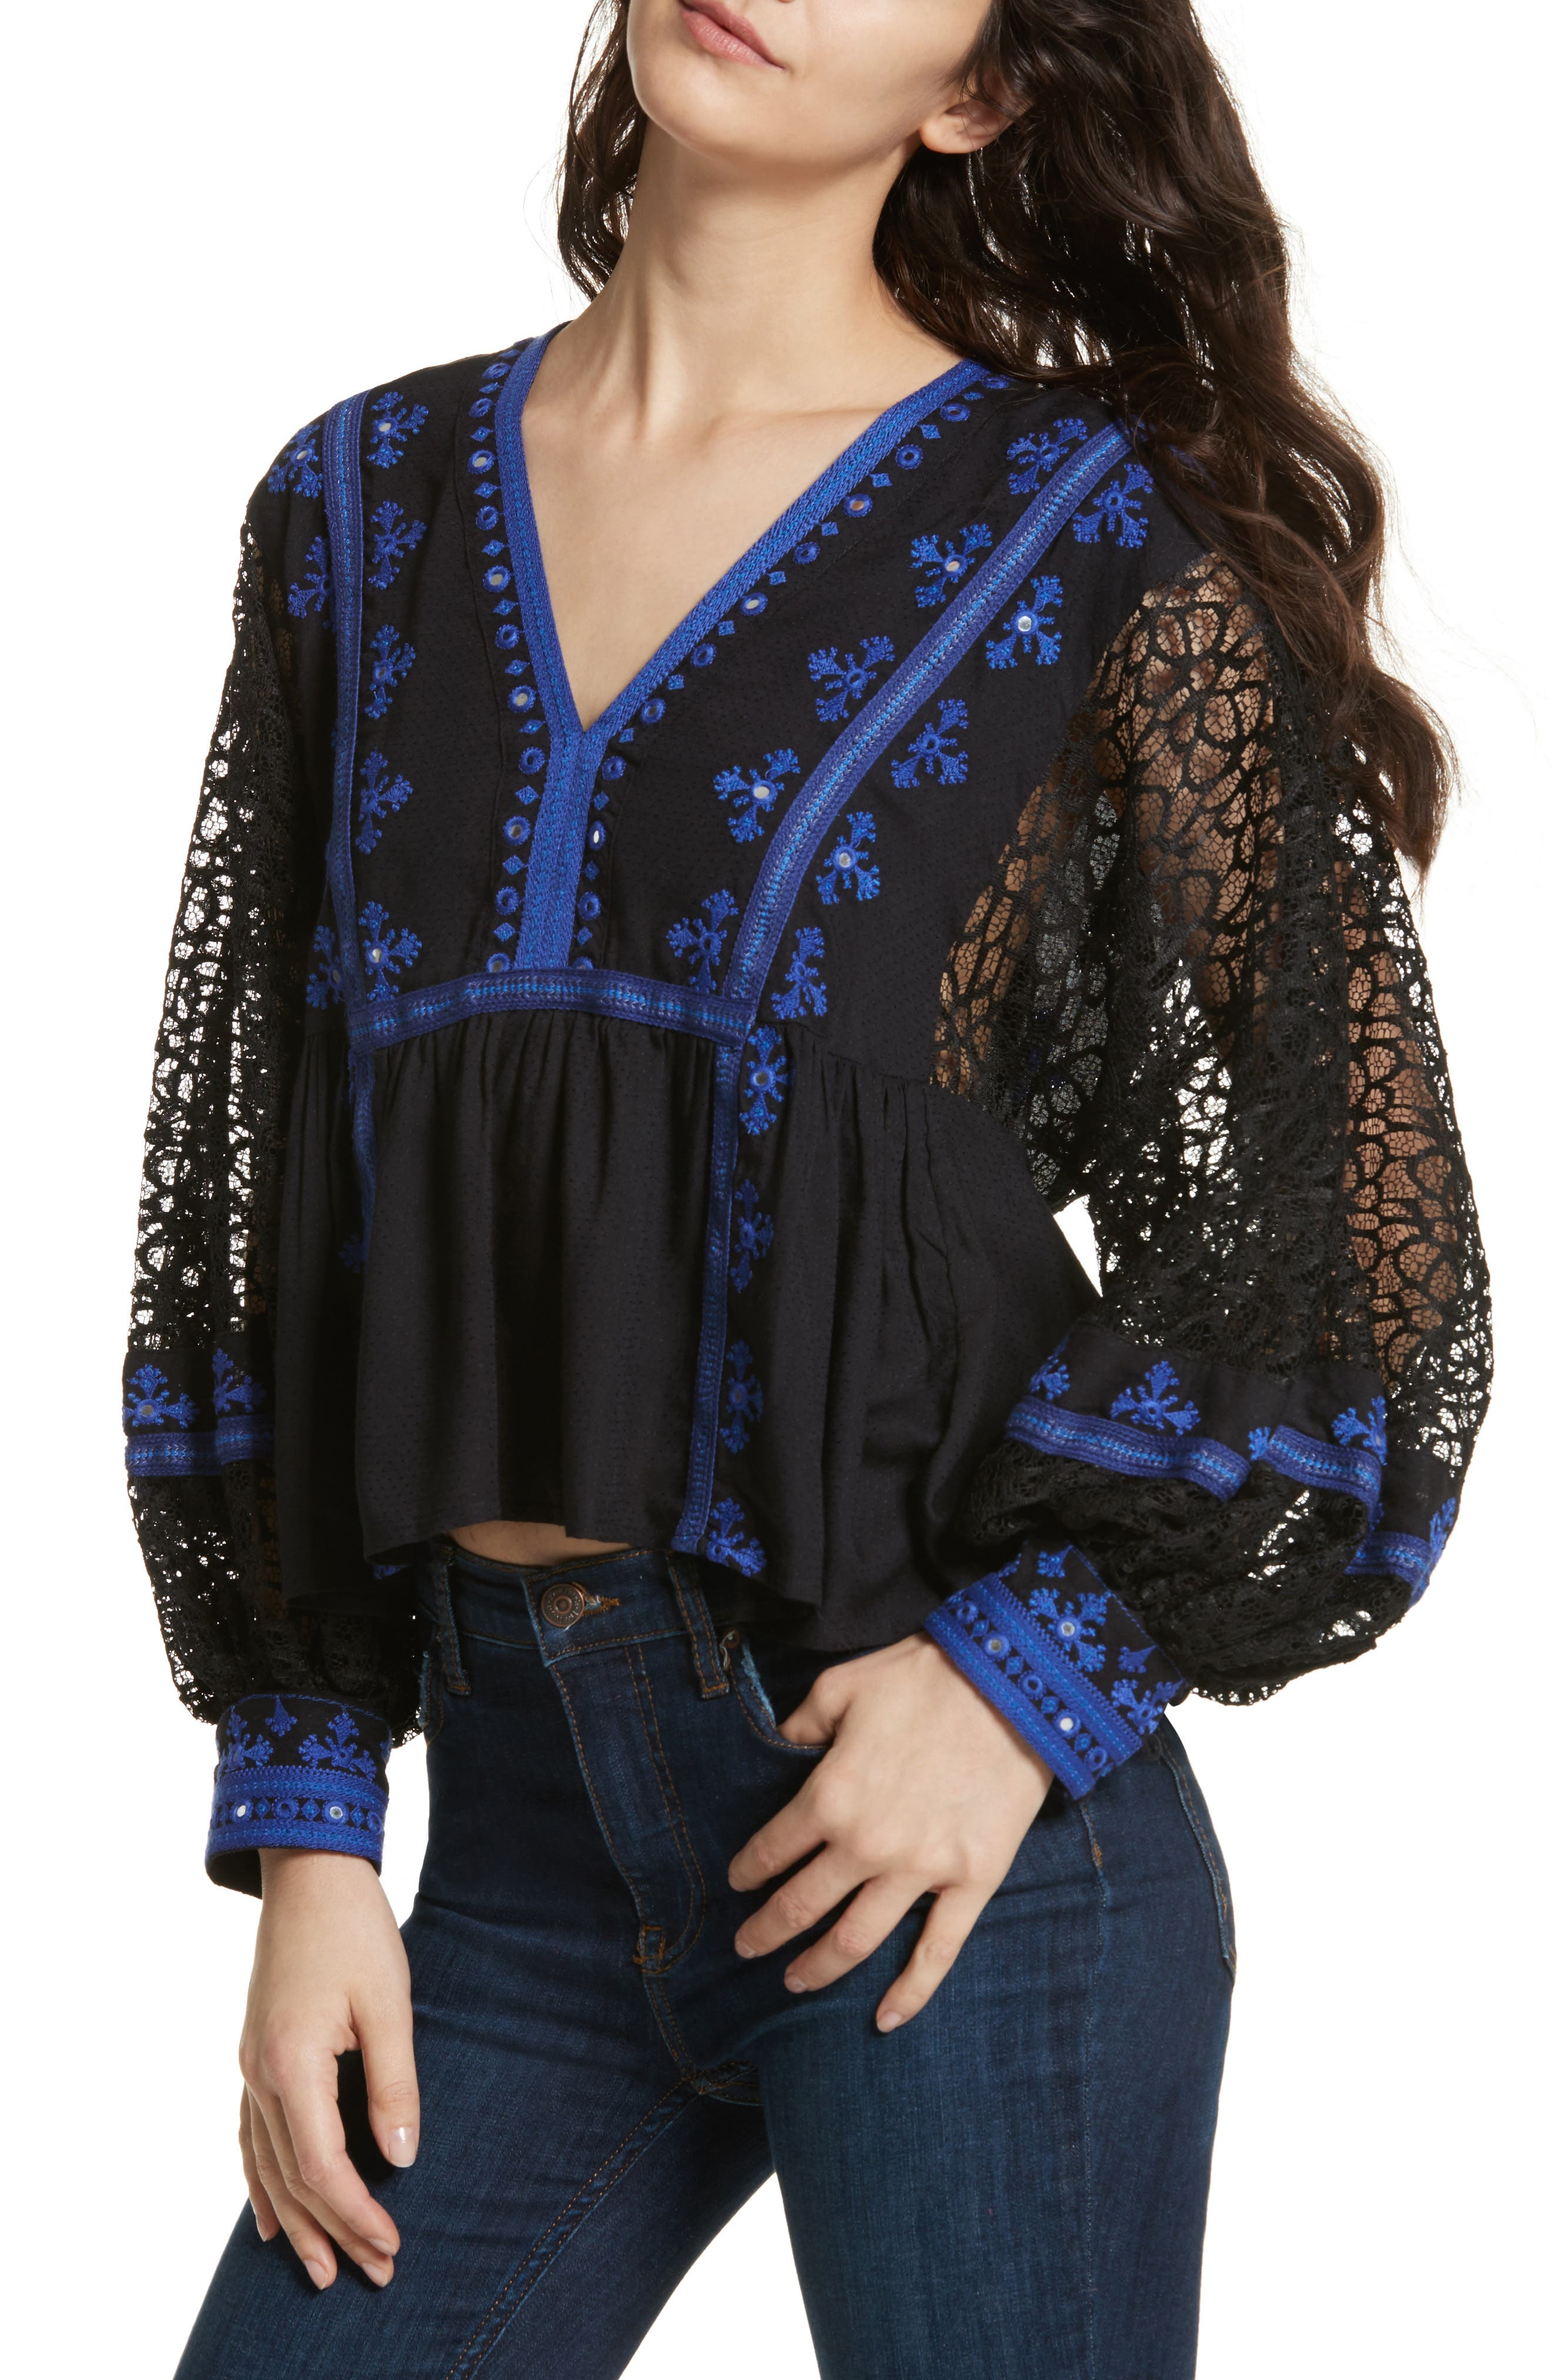 Boogie All Night Blouse,                         Main,                         color, 001